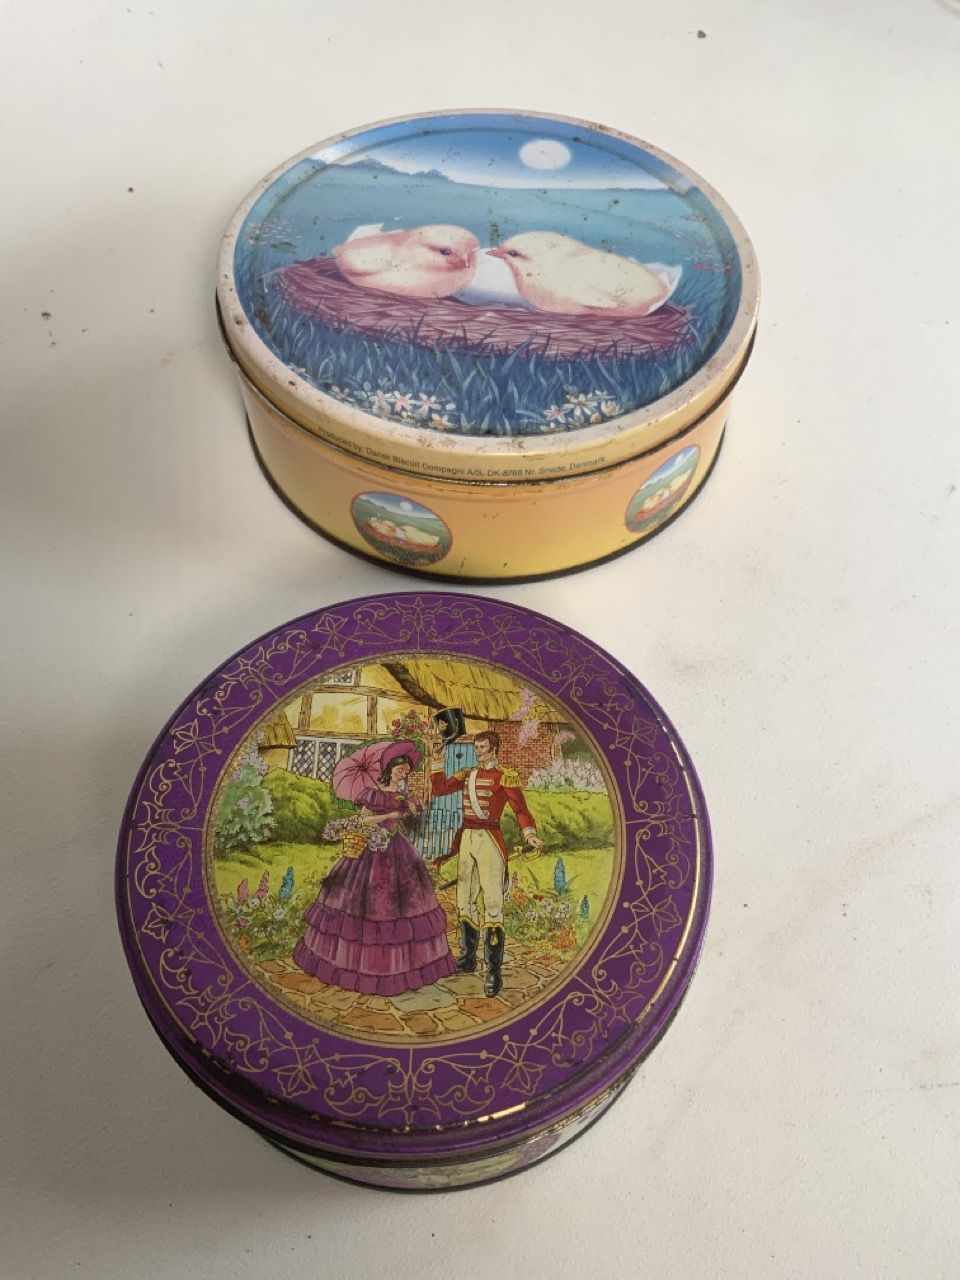 A collection of metalware including two nightlight holders with covers, a brass candle stick with - Image 7 of 8